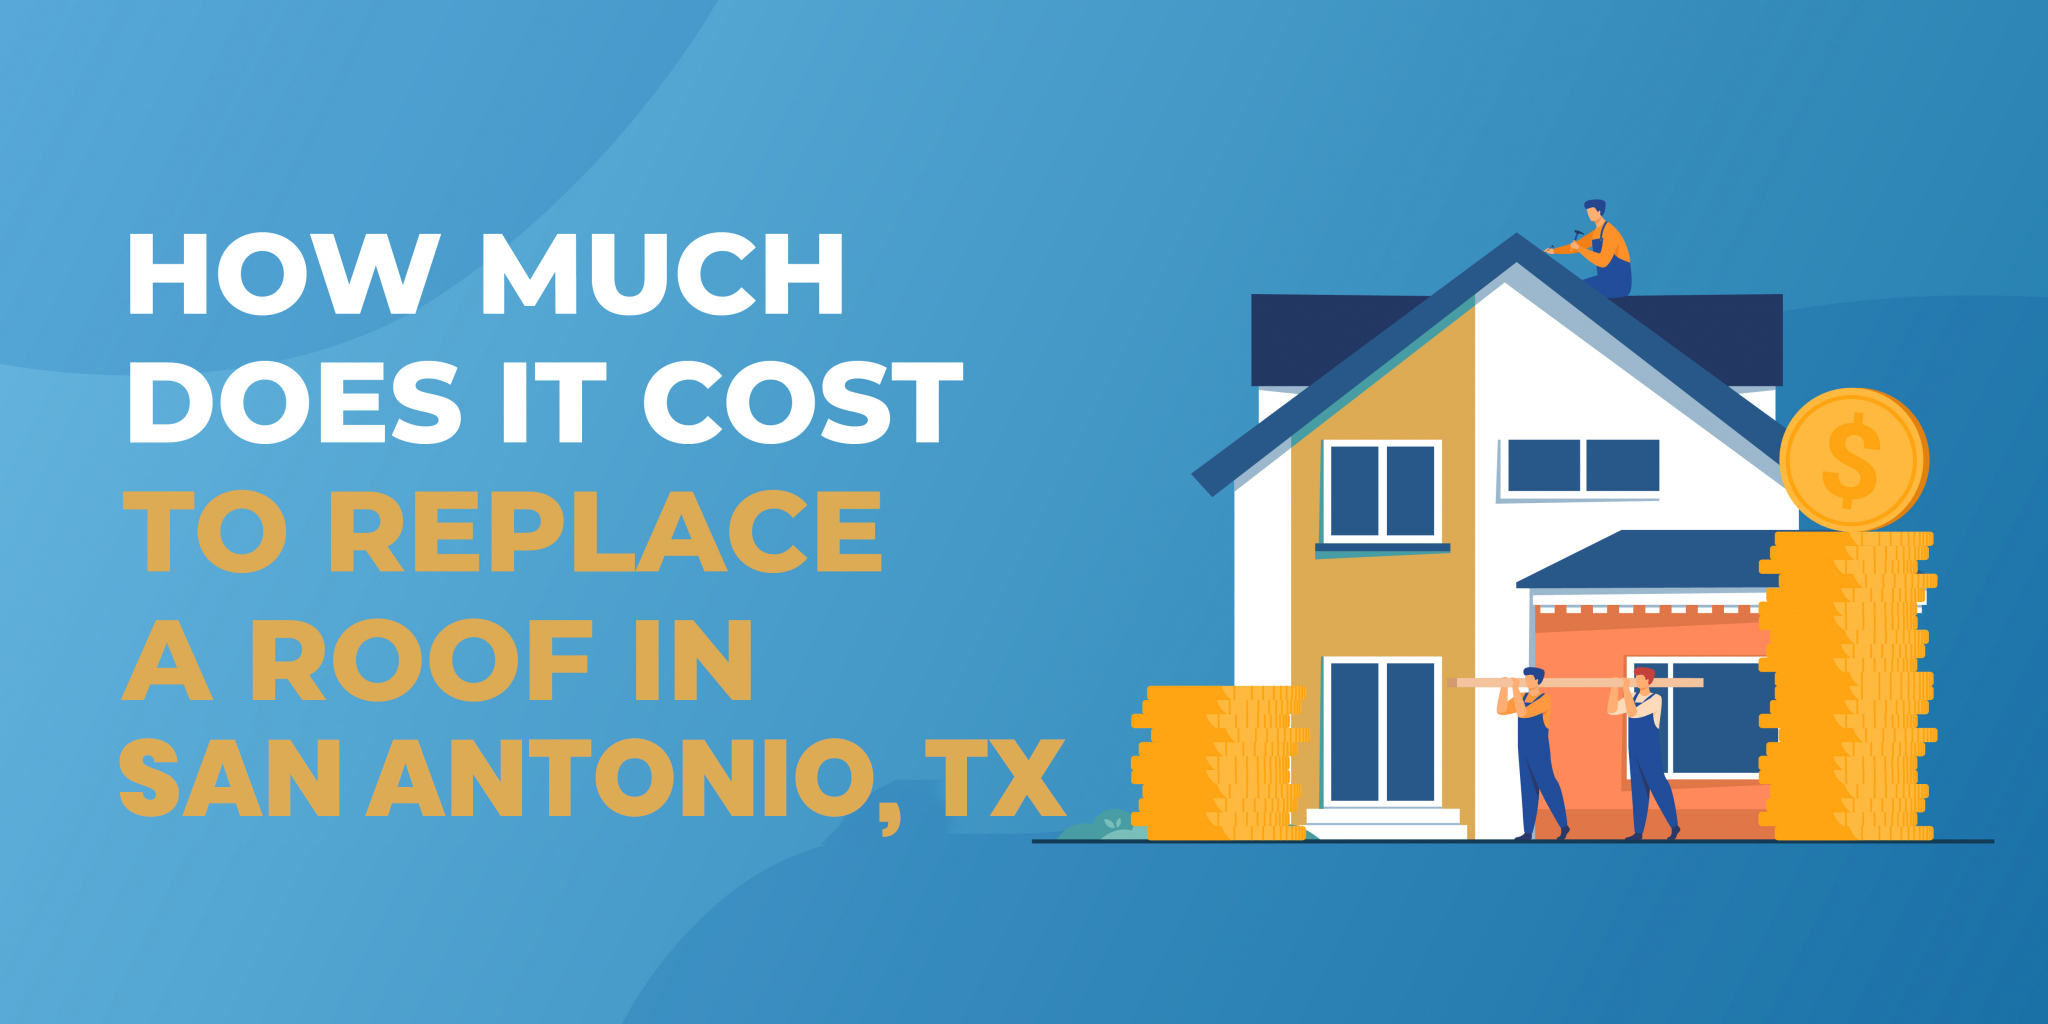 How Much Does It Cost to Replace a Roof in San Antonio?